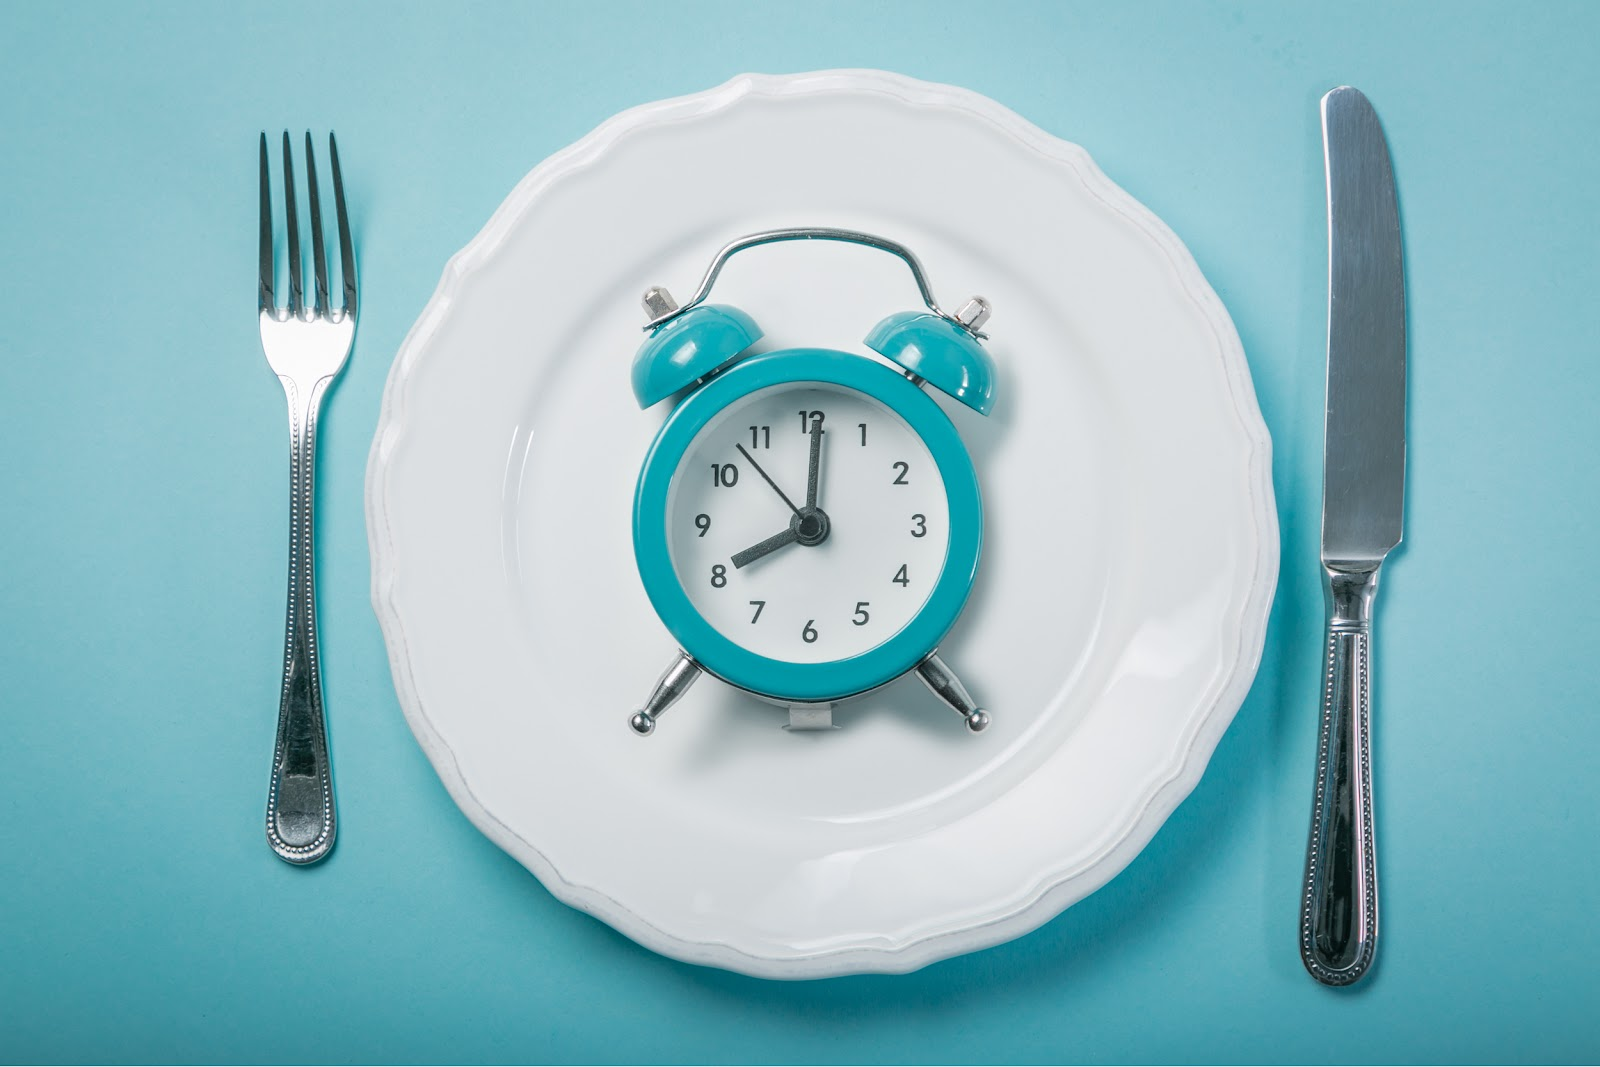 a clock on a plate with a knife and fork.